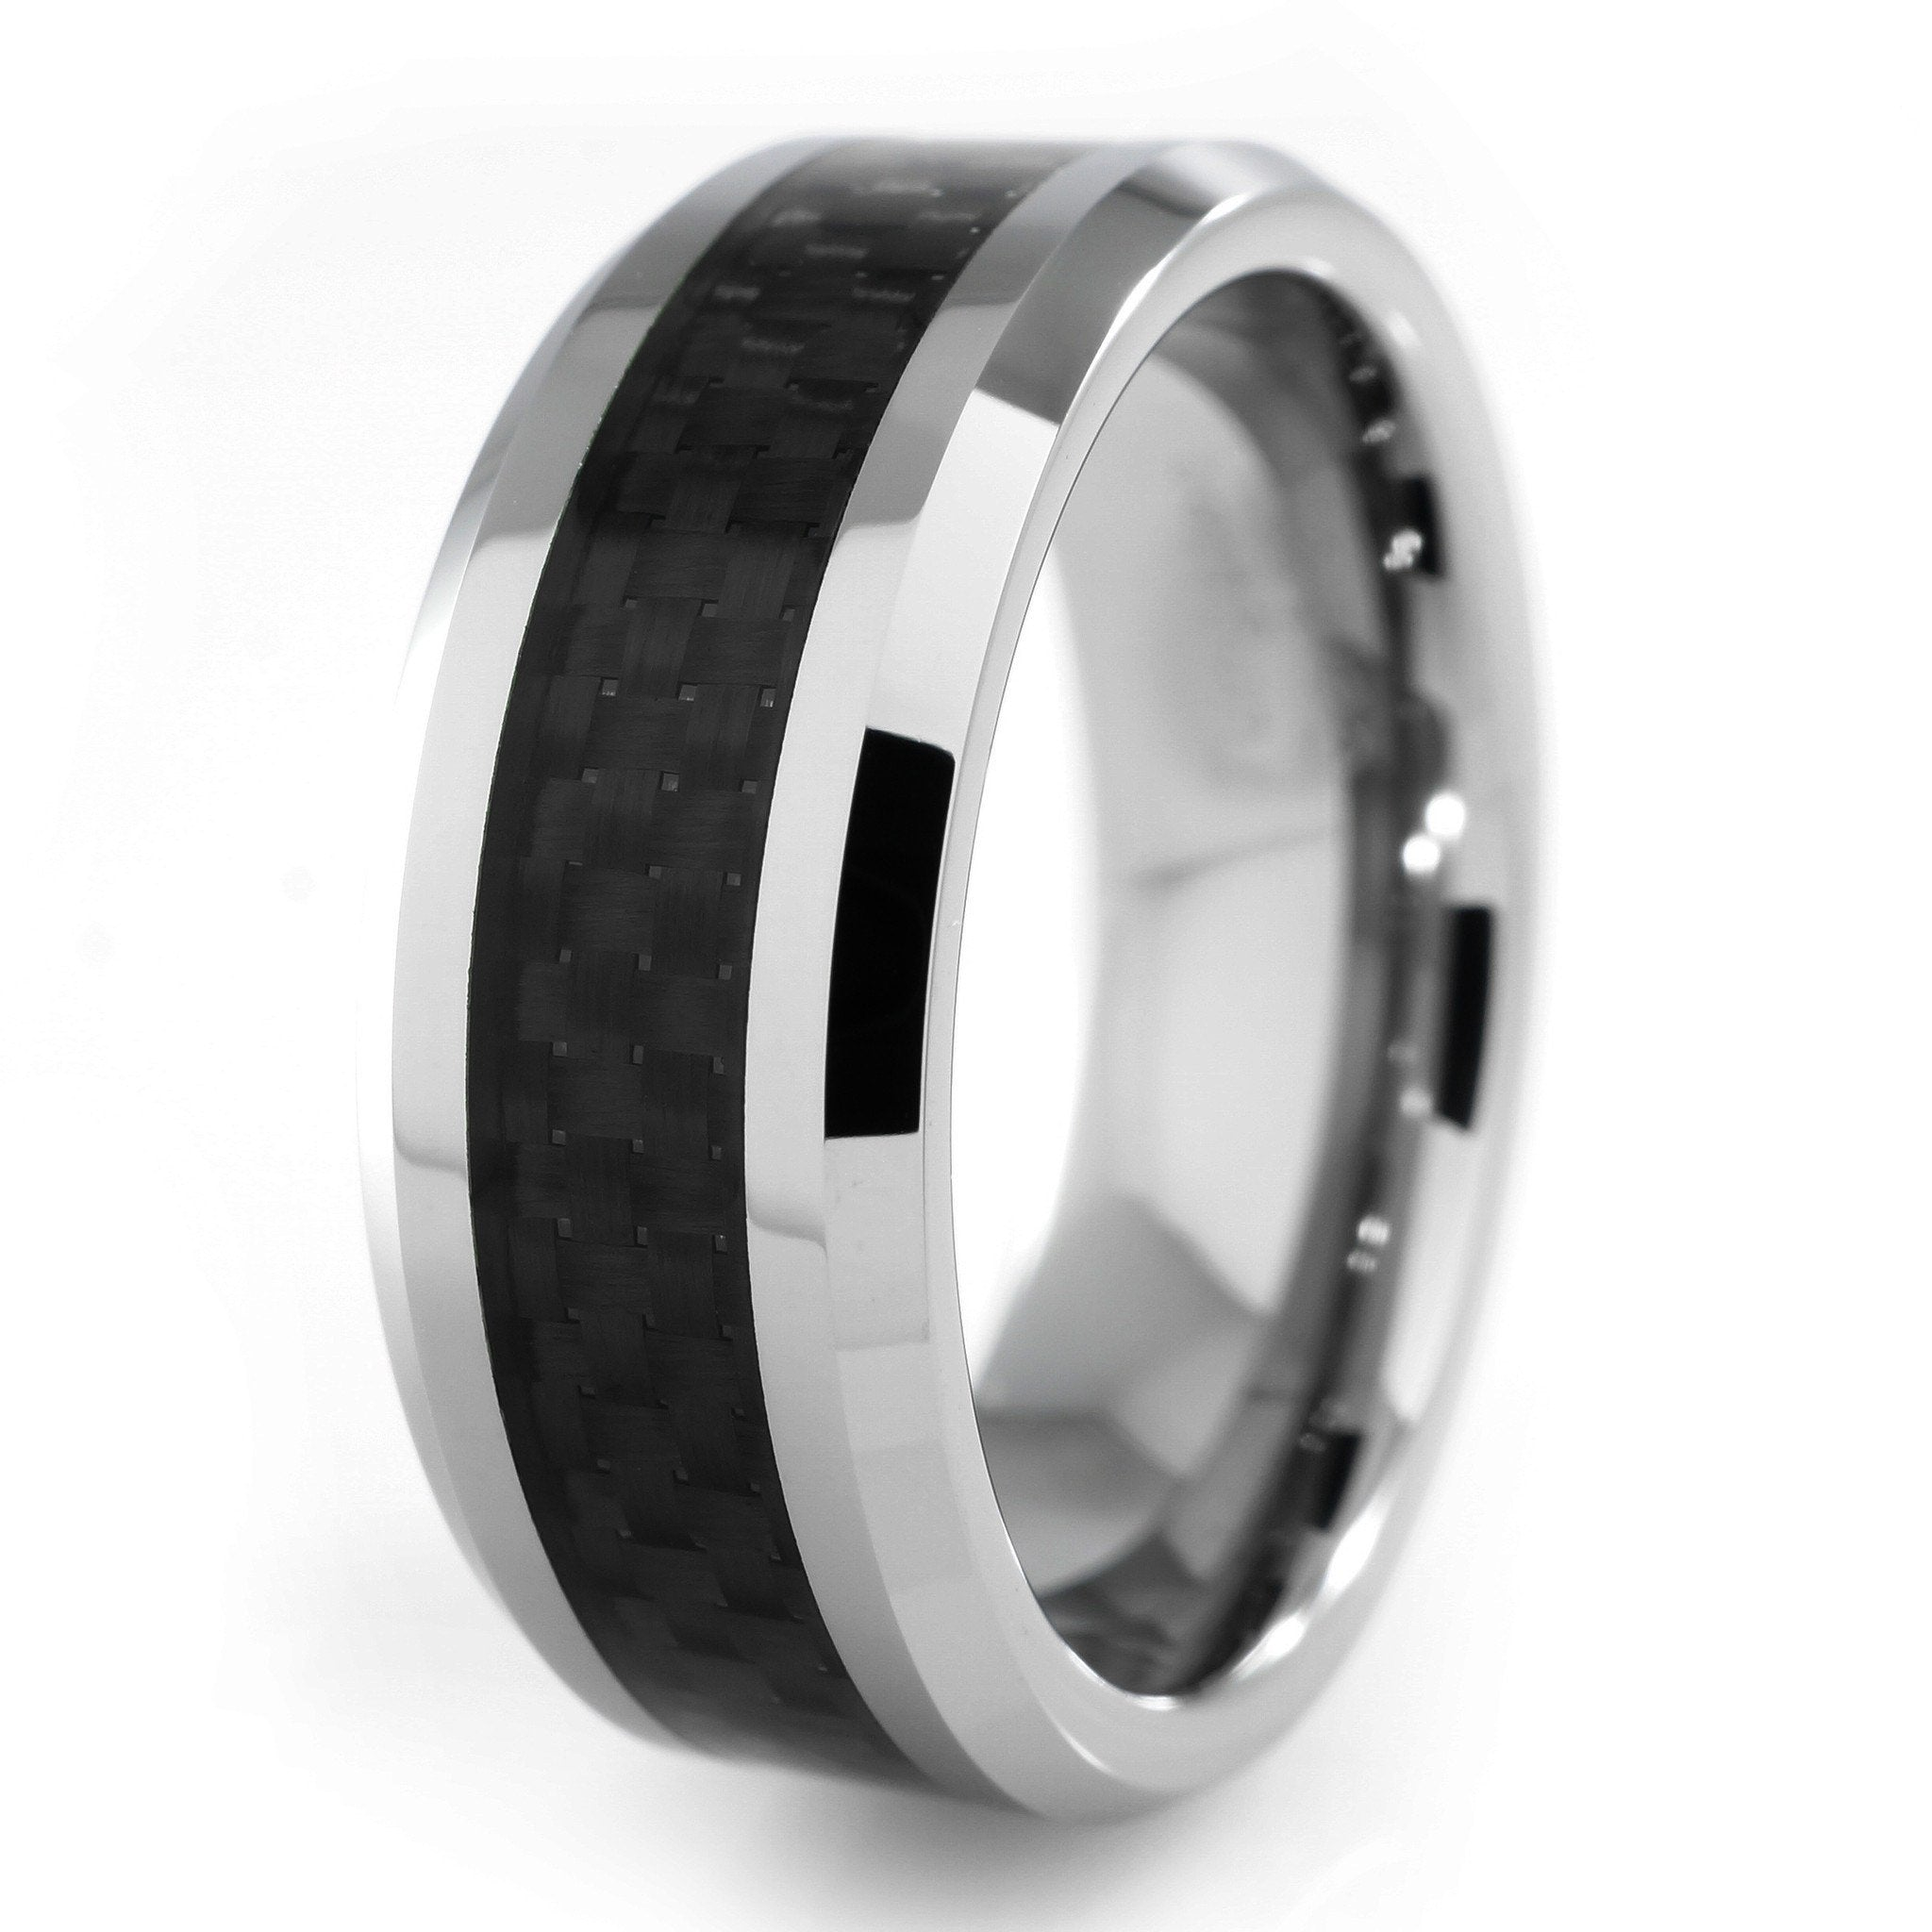 Black Carbon Fiber Silver Tungsten Carbide Ring 8mm  Niv. Eternity Band Settings. Promise Rings. Silver Anklet With Charm. Double Diamond. Logos Diamond. Used Gold Jewellery. Child Gold Jewellery. Forever Engagement Rings